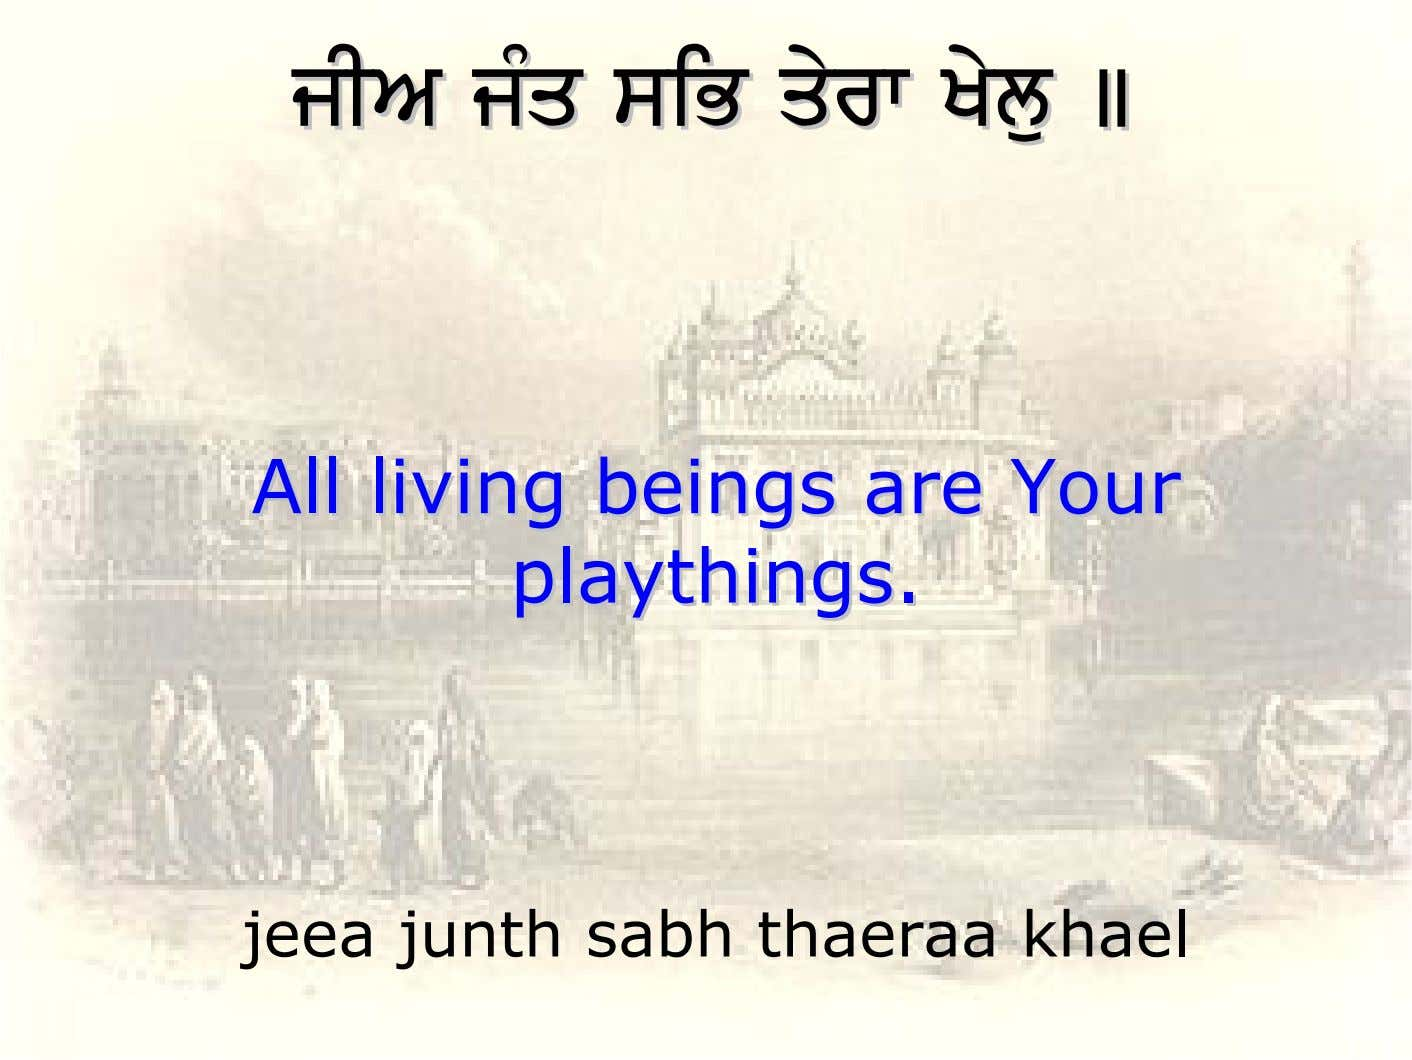 jIAjIA jMqjMq siBsiB qyrwqyrw KyluKylu ]] AllAll livingliving beingsbeings areare YourYour playthings.playthings. jeea